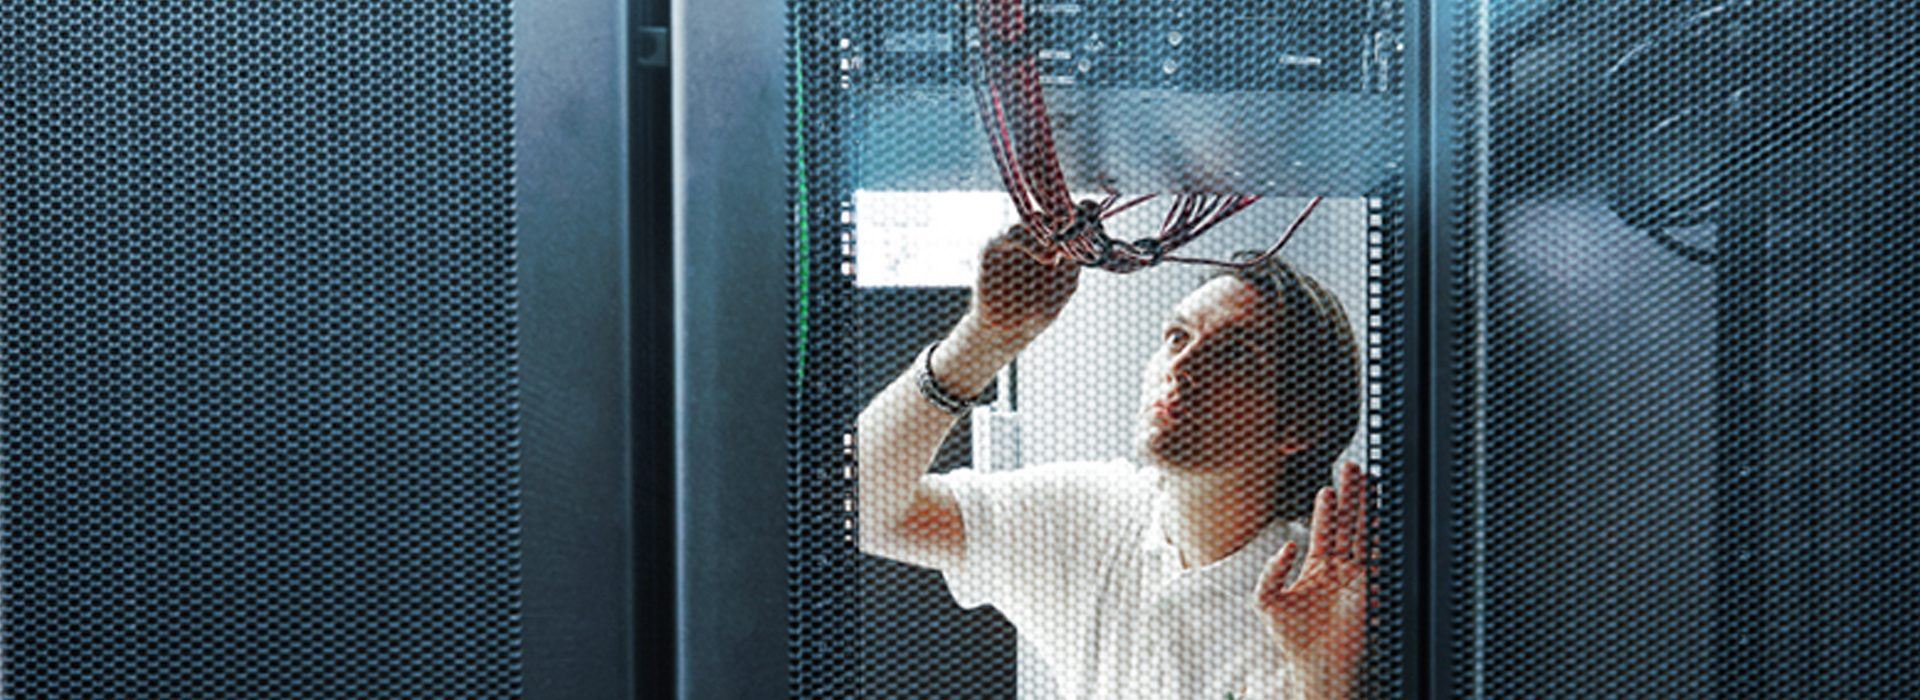 Close-up of an MGB Systems specialist examining wires in the server room of a data center